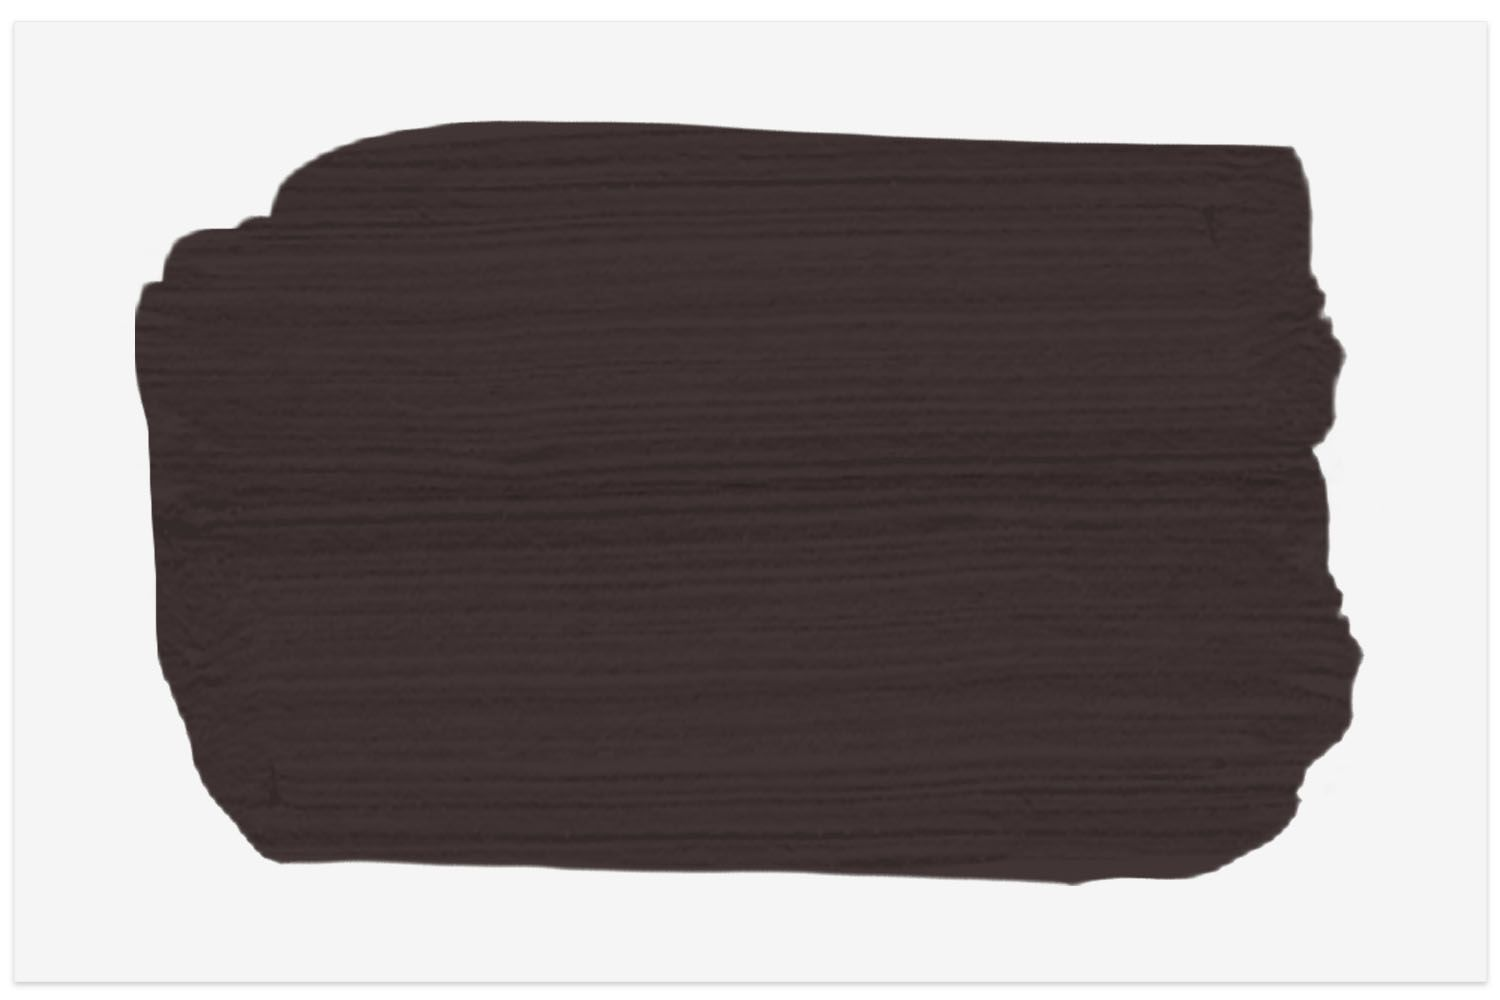 Farrow & Ball's Tanners' Brown paint swatch